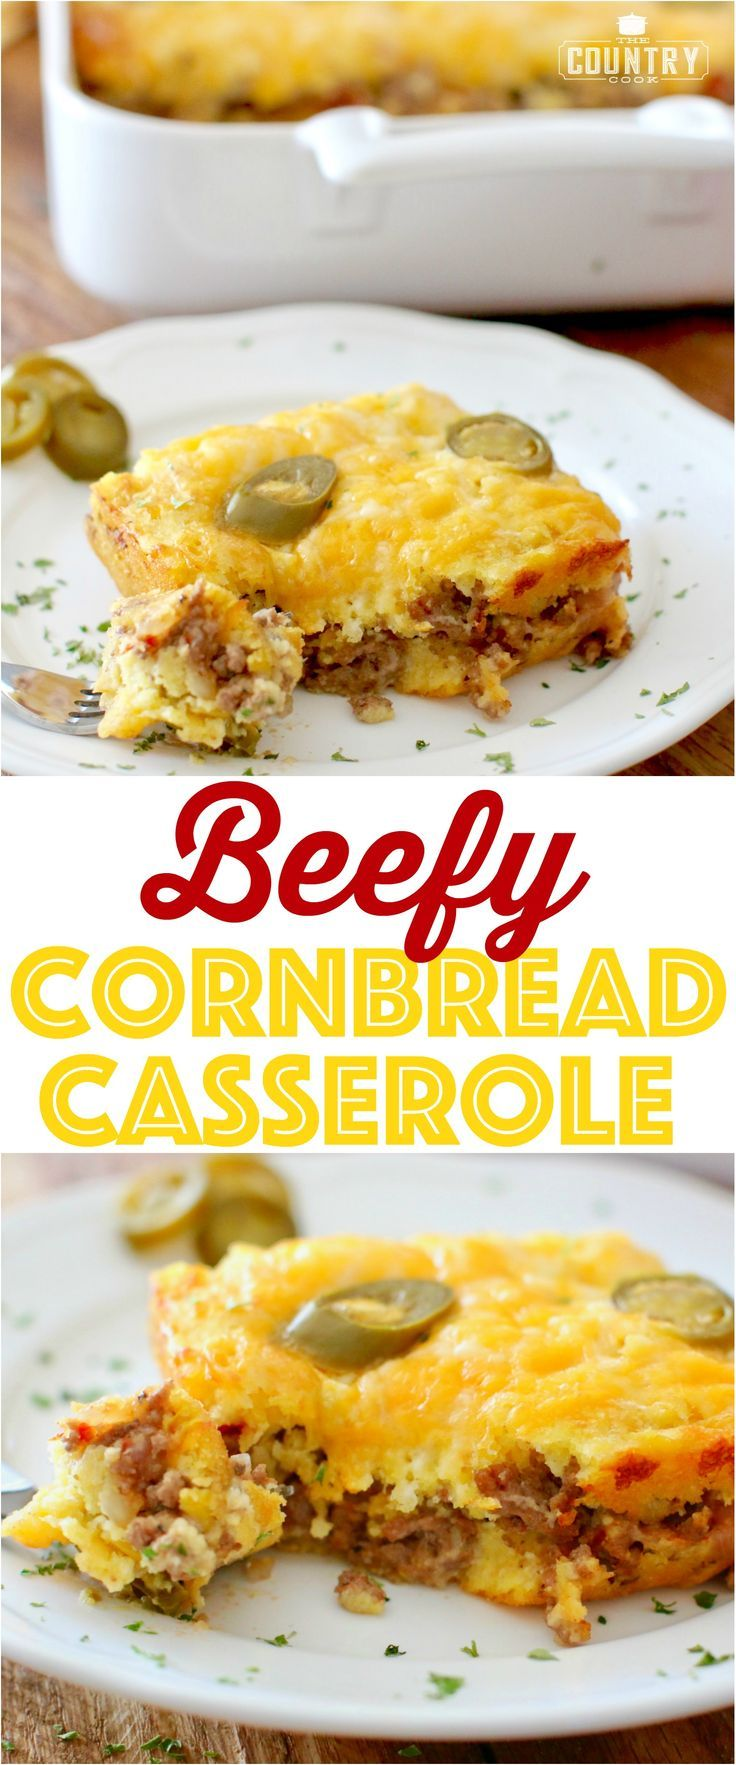 Beefy Cornbread Casserole Recipe from The Country Cook and a FREE Cookbook download!! This casserole is full of seasoned ground beef with salsa and cornbread mix with melty cheese. So good!